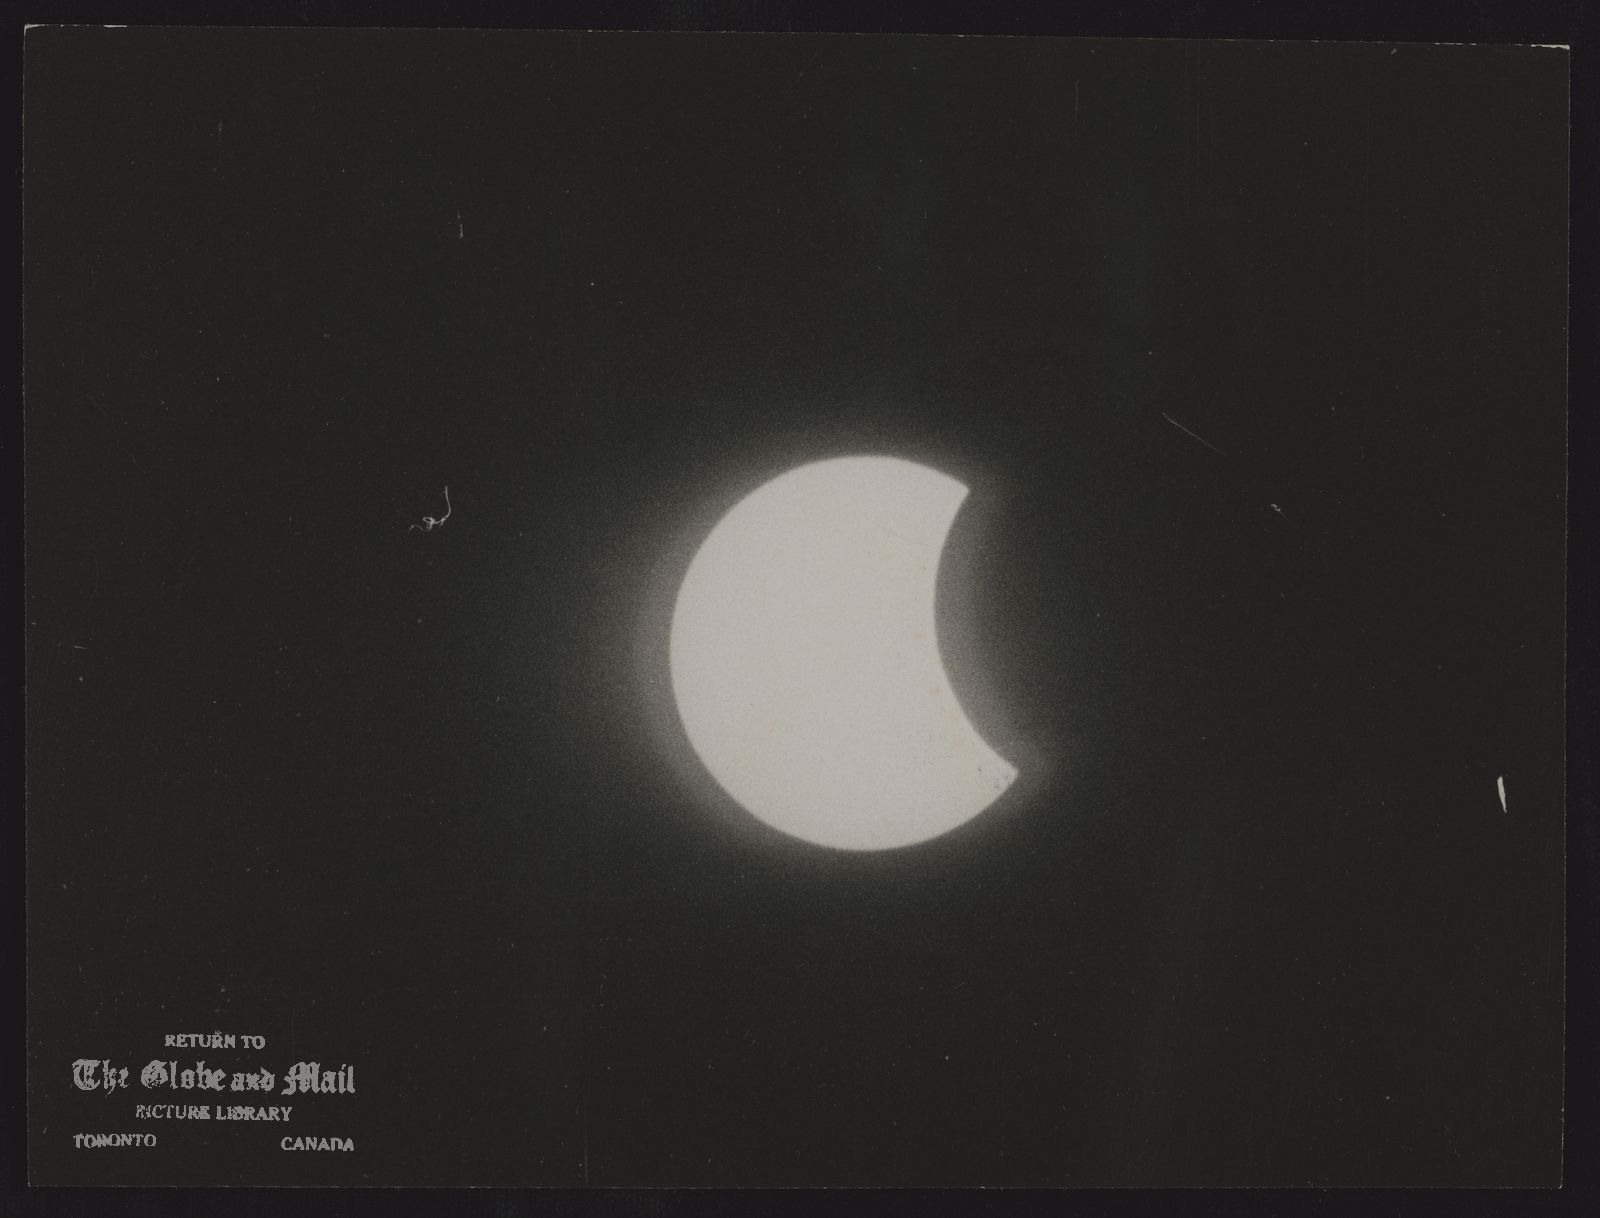 ECLIPSES (View of solar eclipse from Toronto at 3:45 P.M. on July 10/72.)